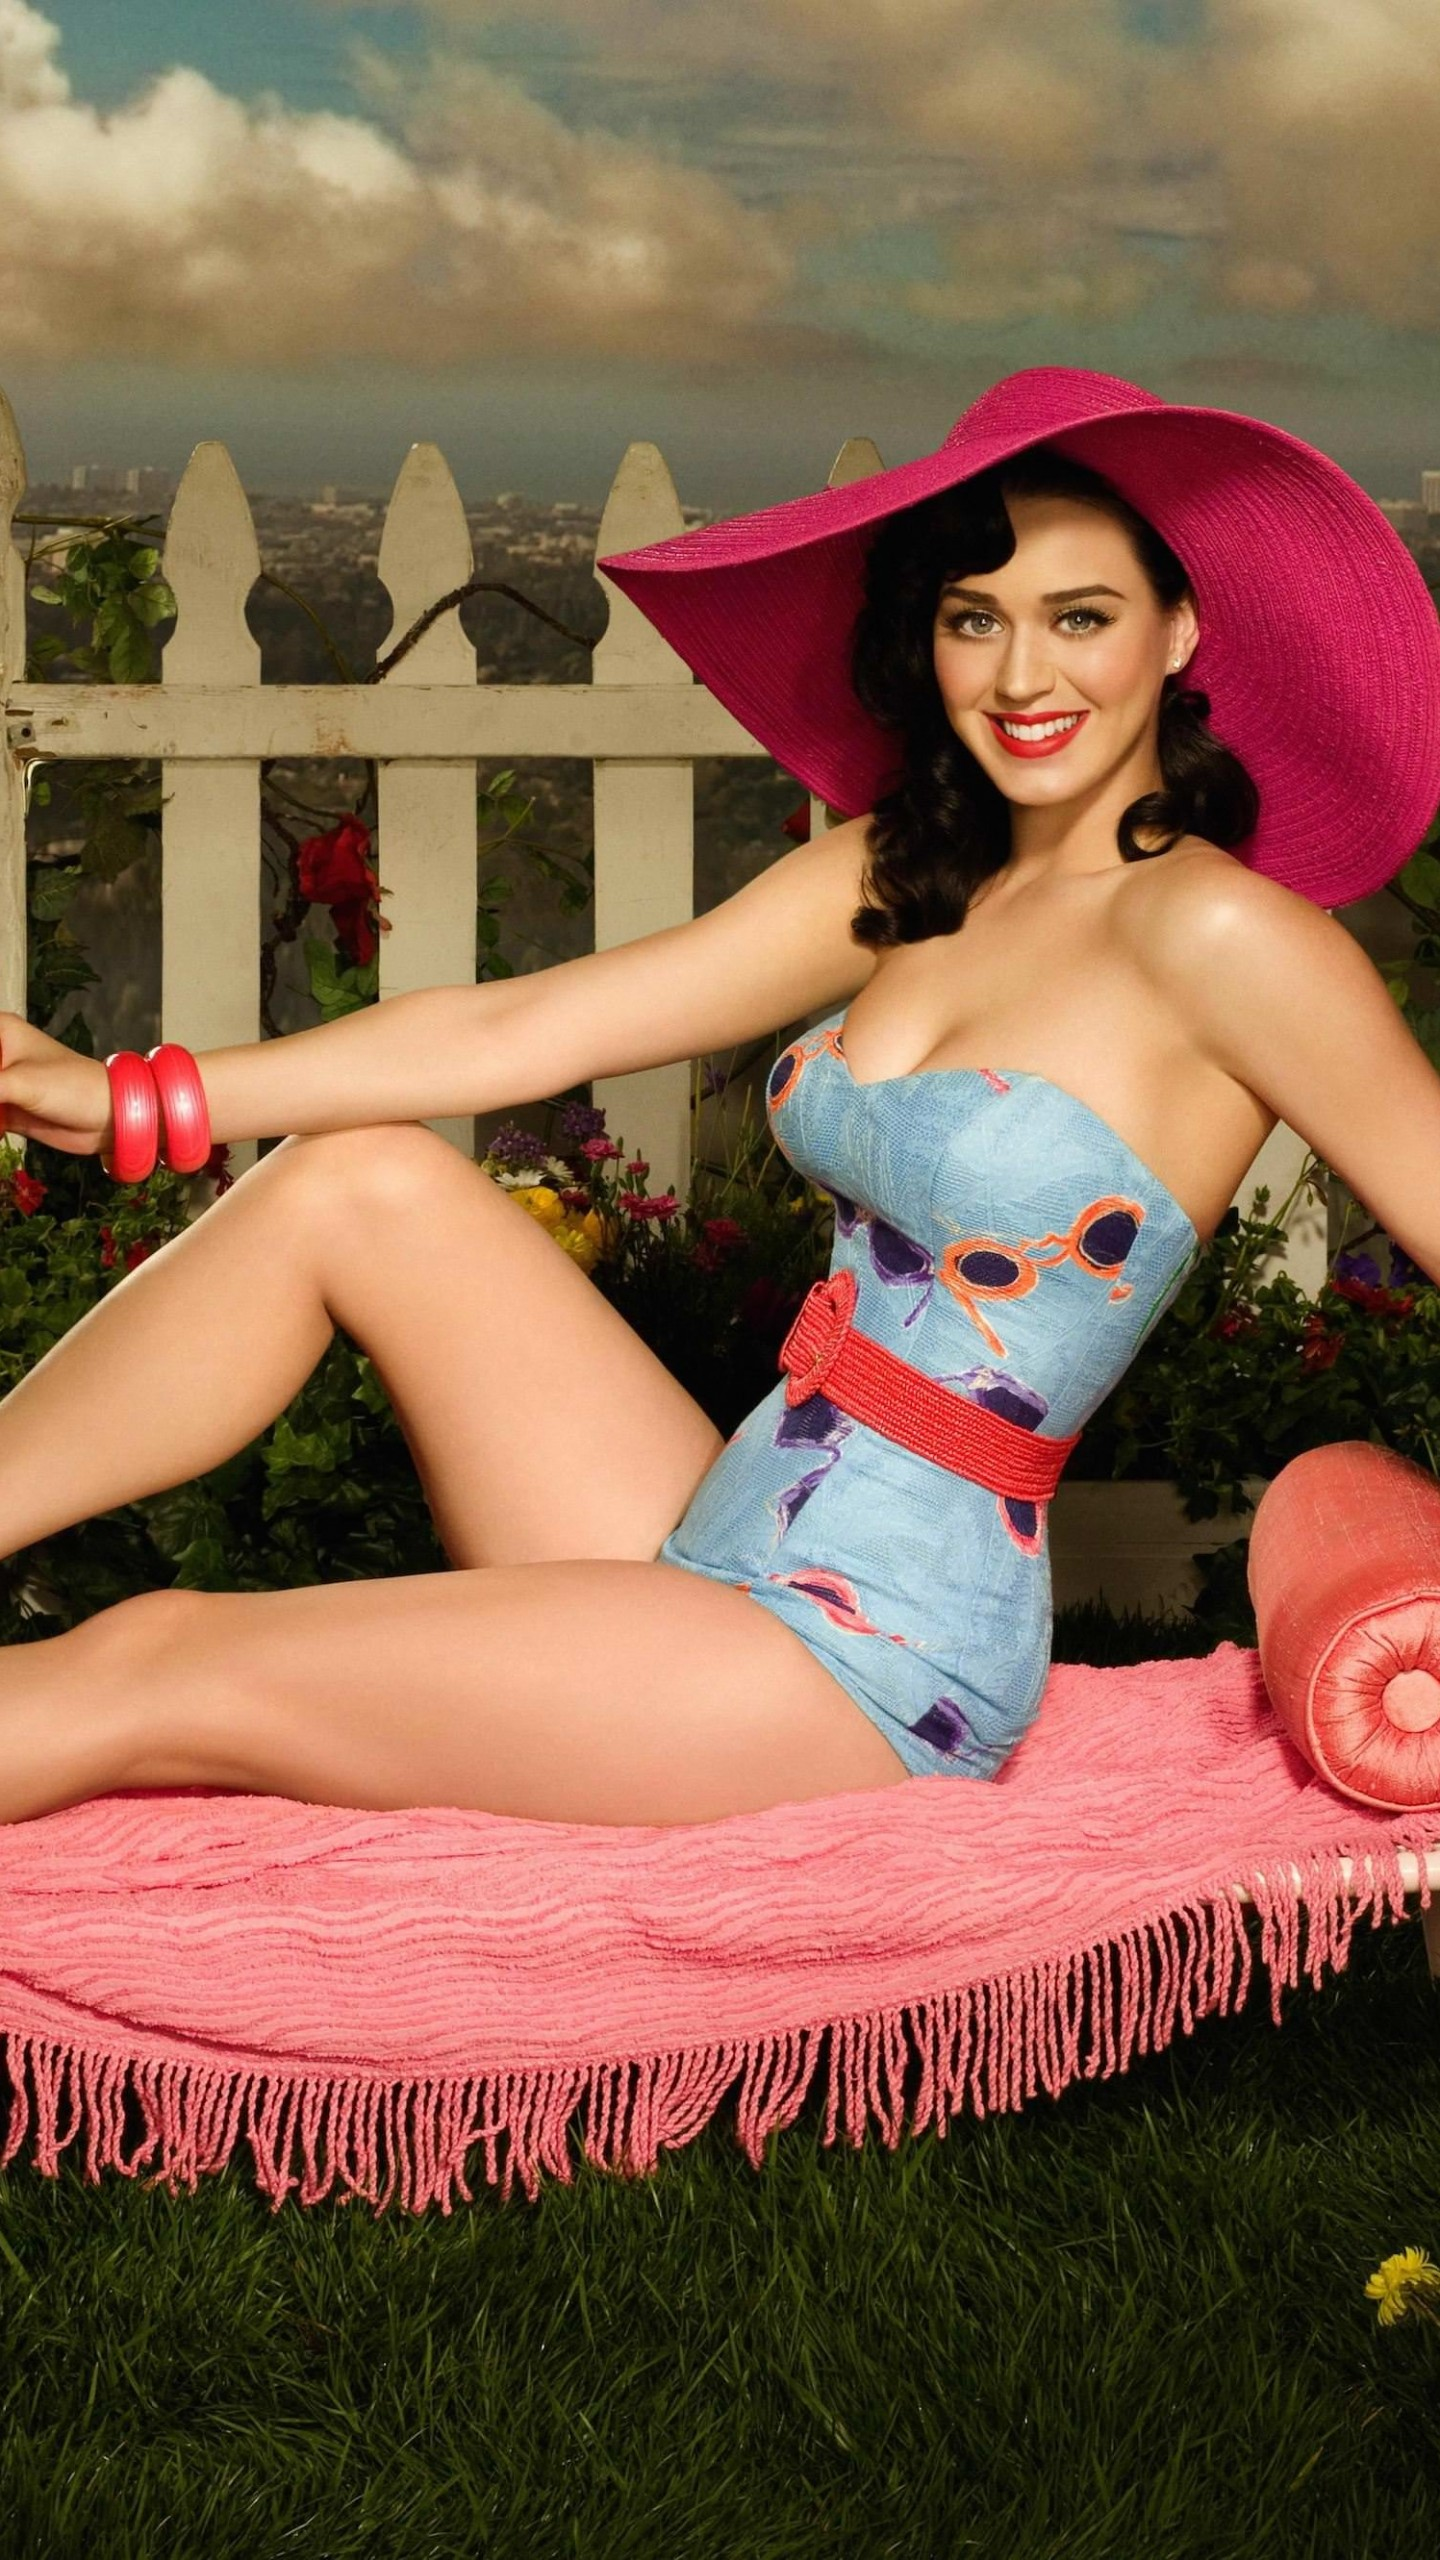 Katy Perry Lying On Chair Body Figure Wallpaper for SAMSUNG Galaxy Note 4